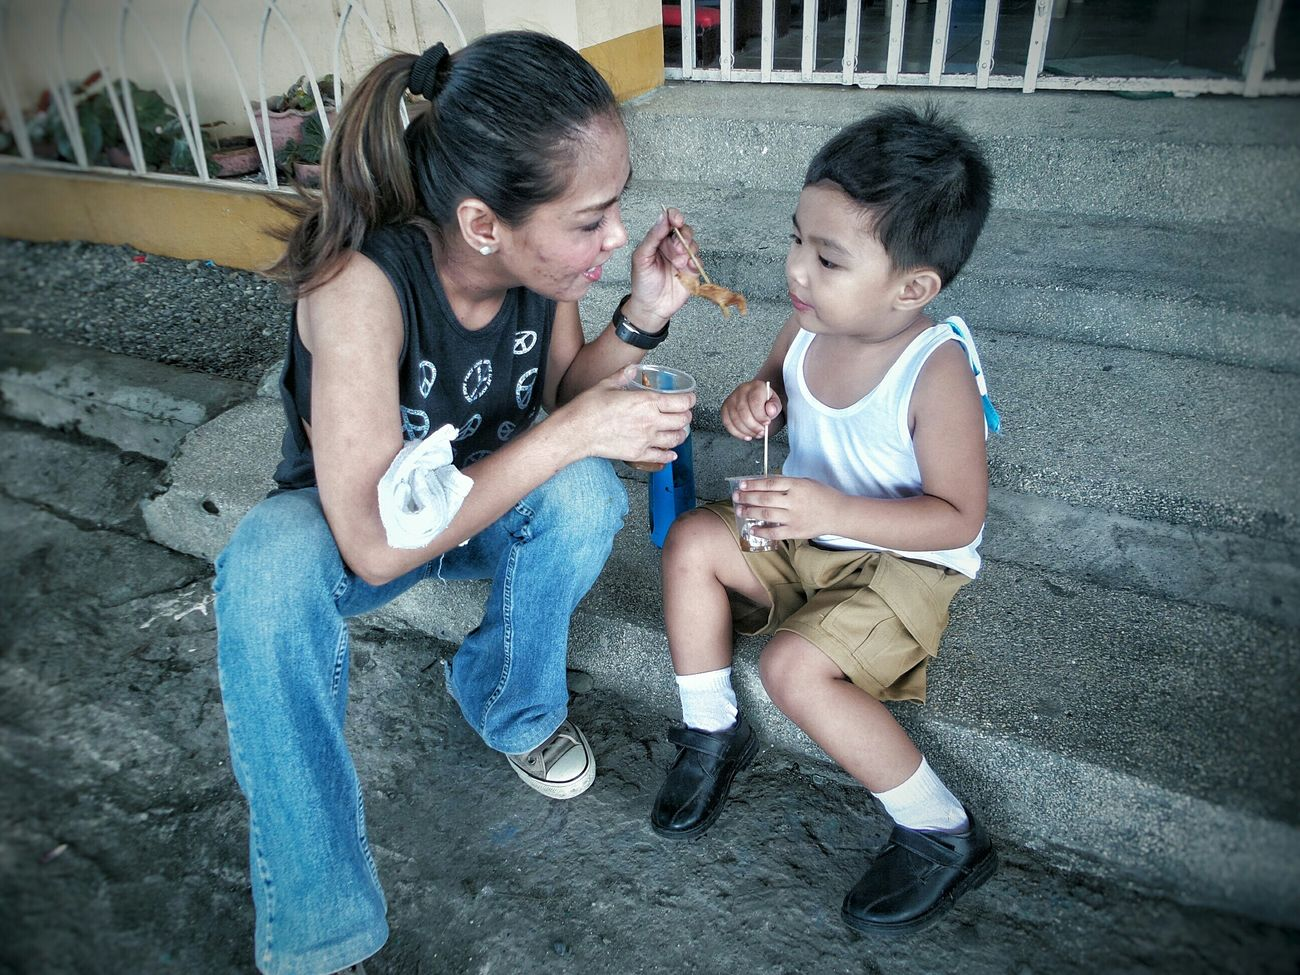 RePicture Motherhood Nanay Streetfoodwithbuhawi Motherandson  Love Buhawiandnanay Fishballs Nanaynibuhawi Enjoying Life Check This Out